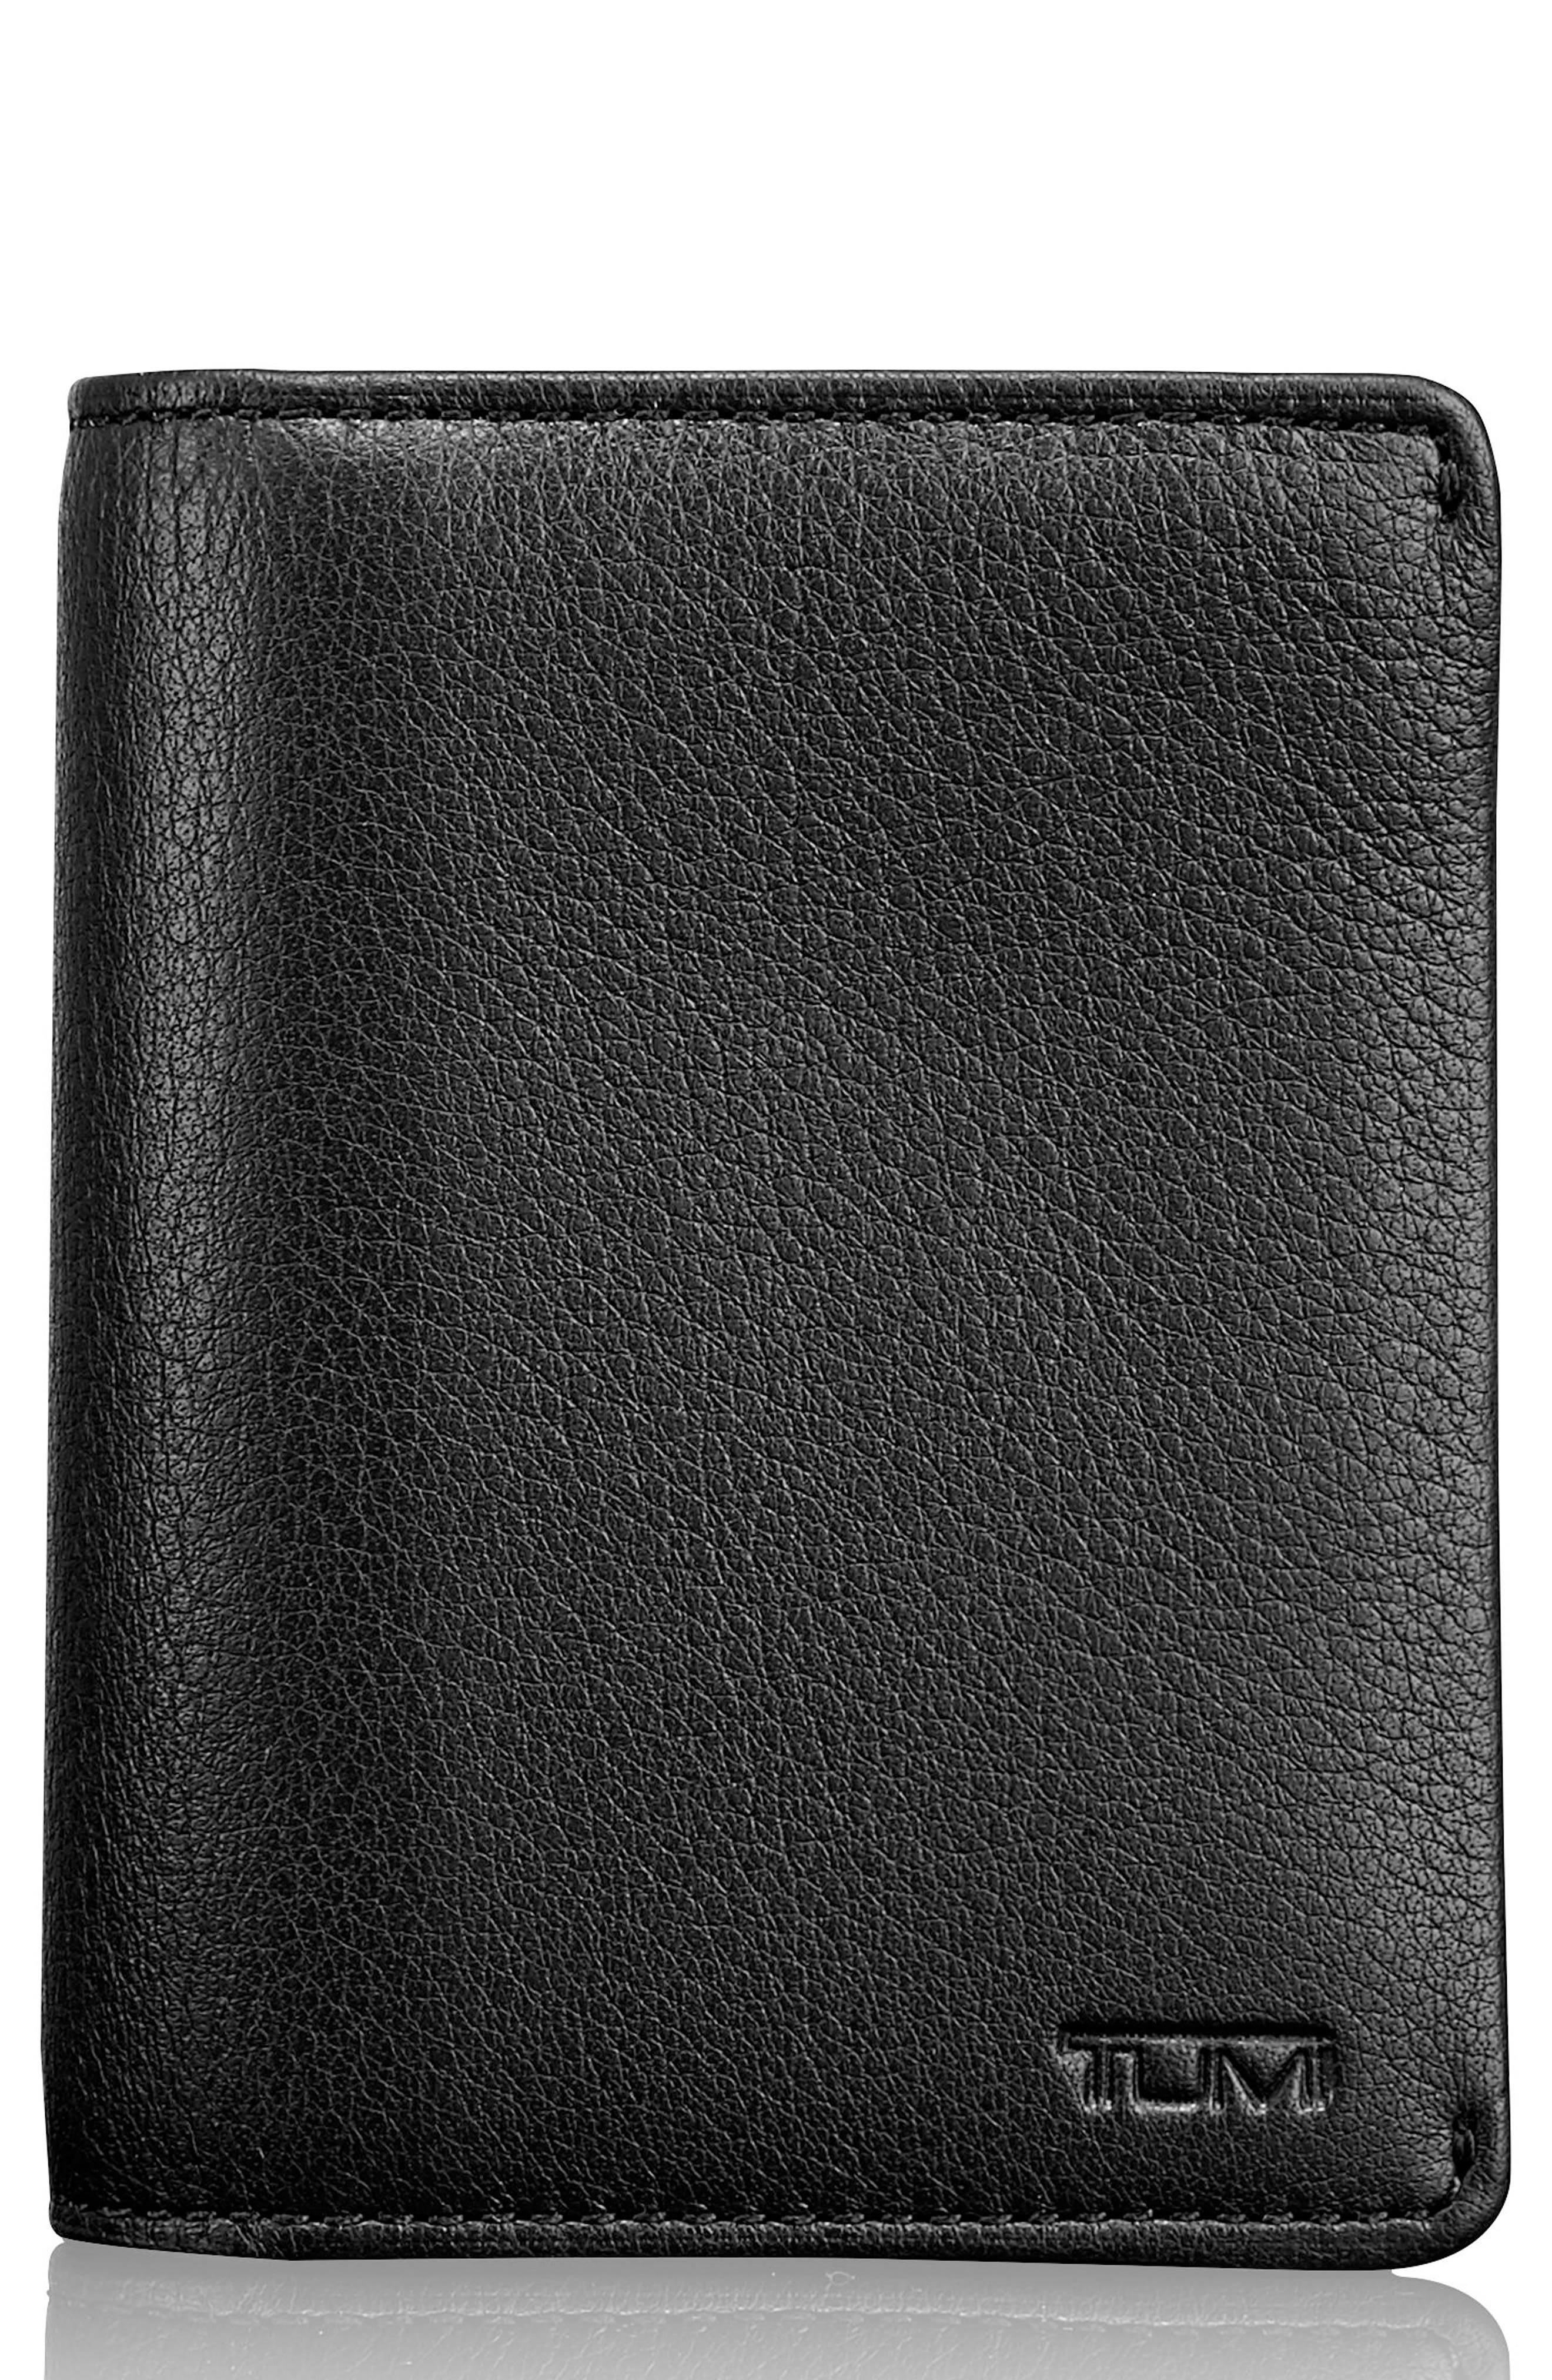 Leather RFID Card Case,                             Main thumbnail 1, color,                             BLACK TEXTURED